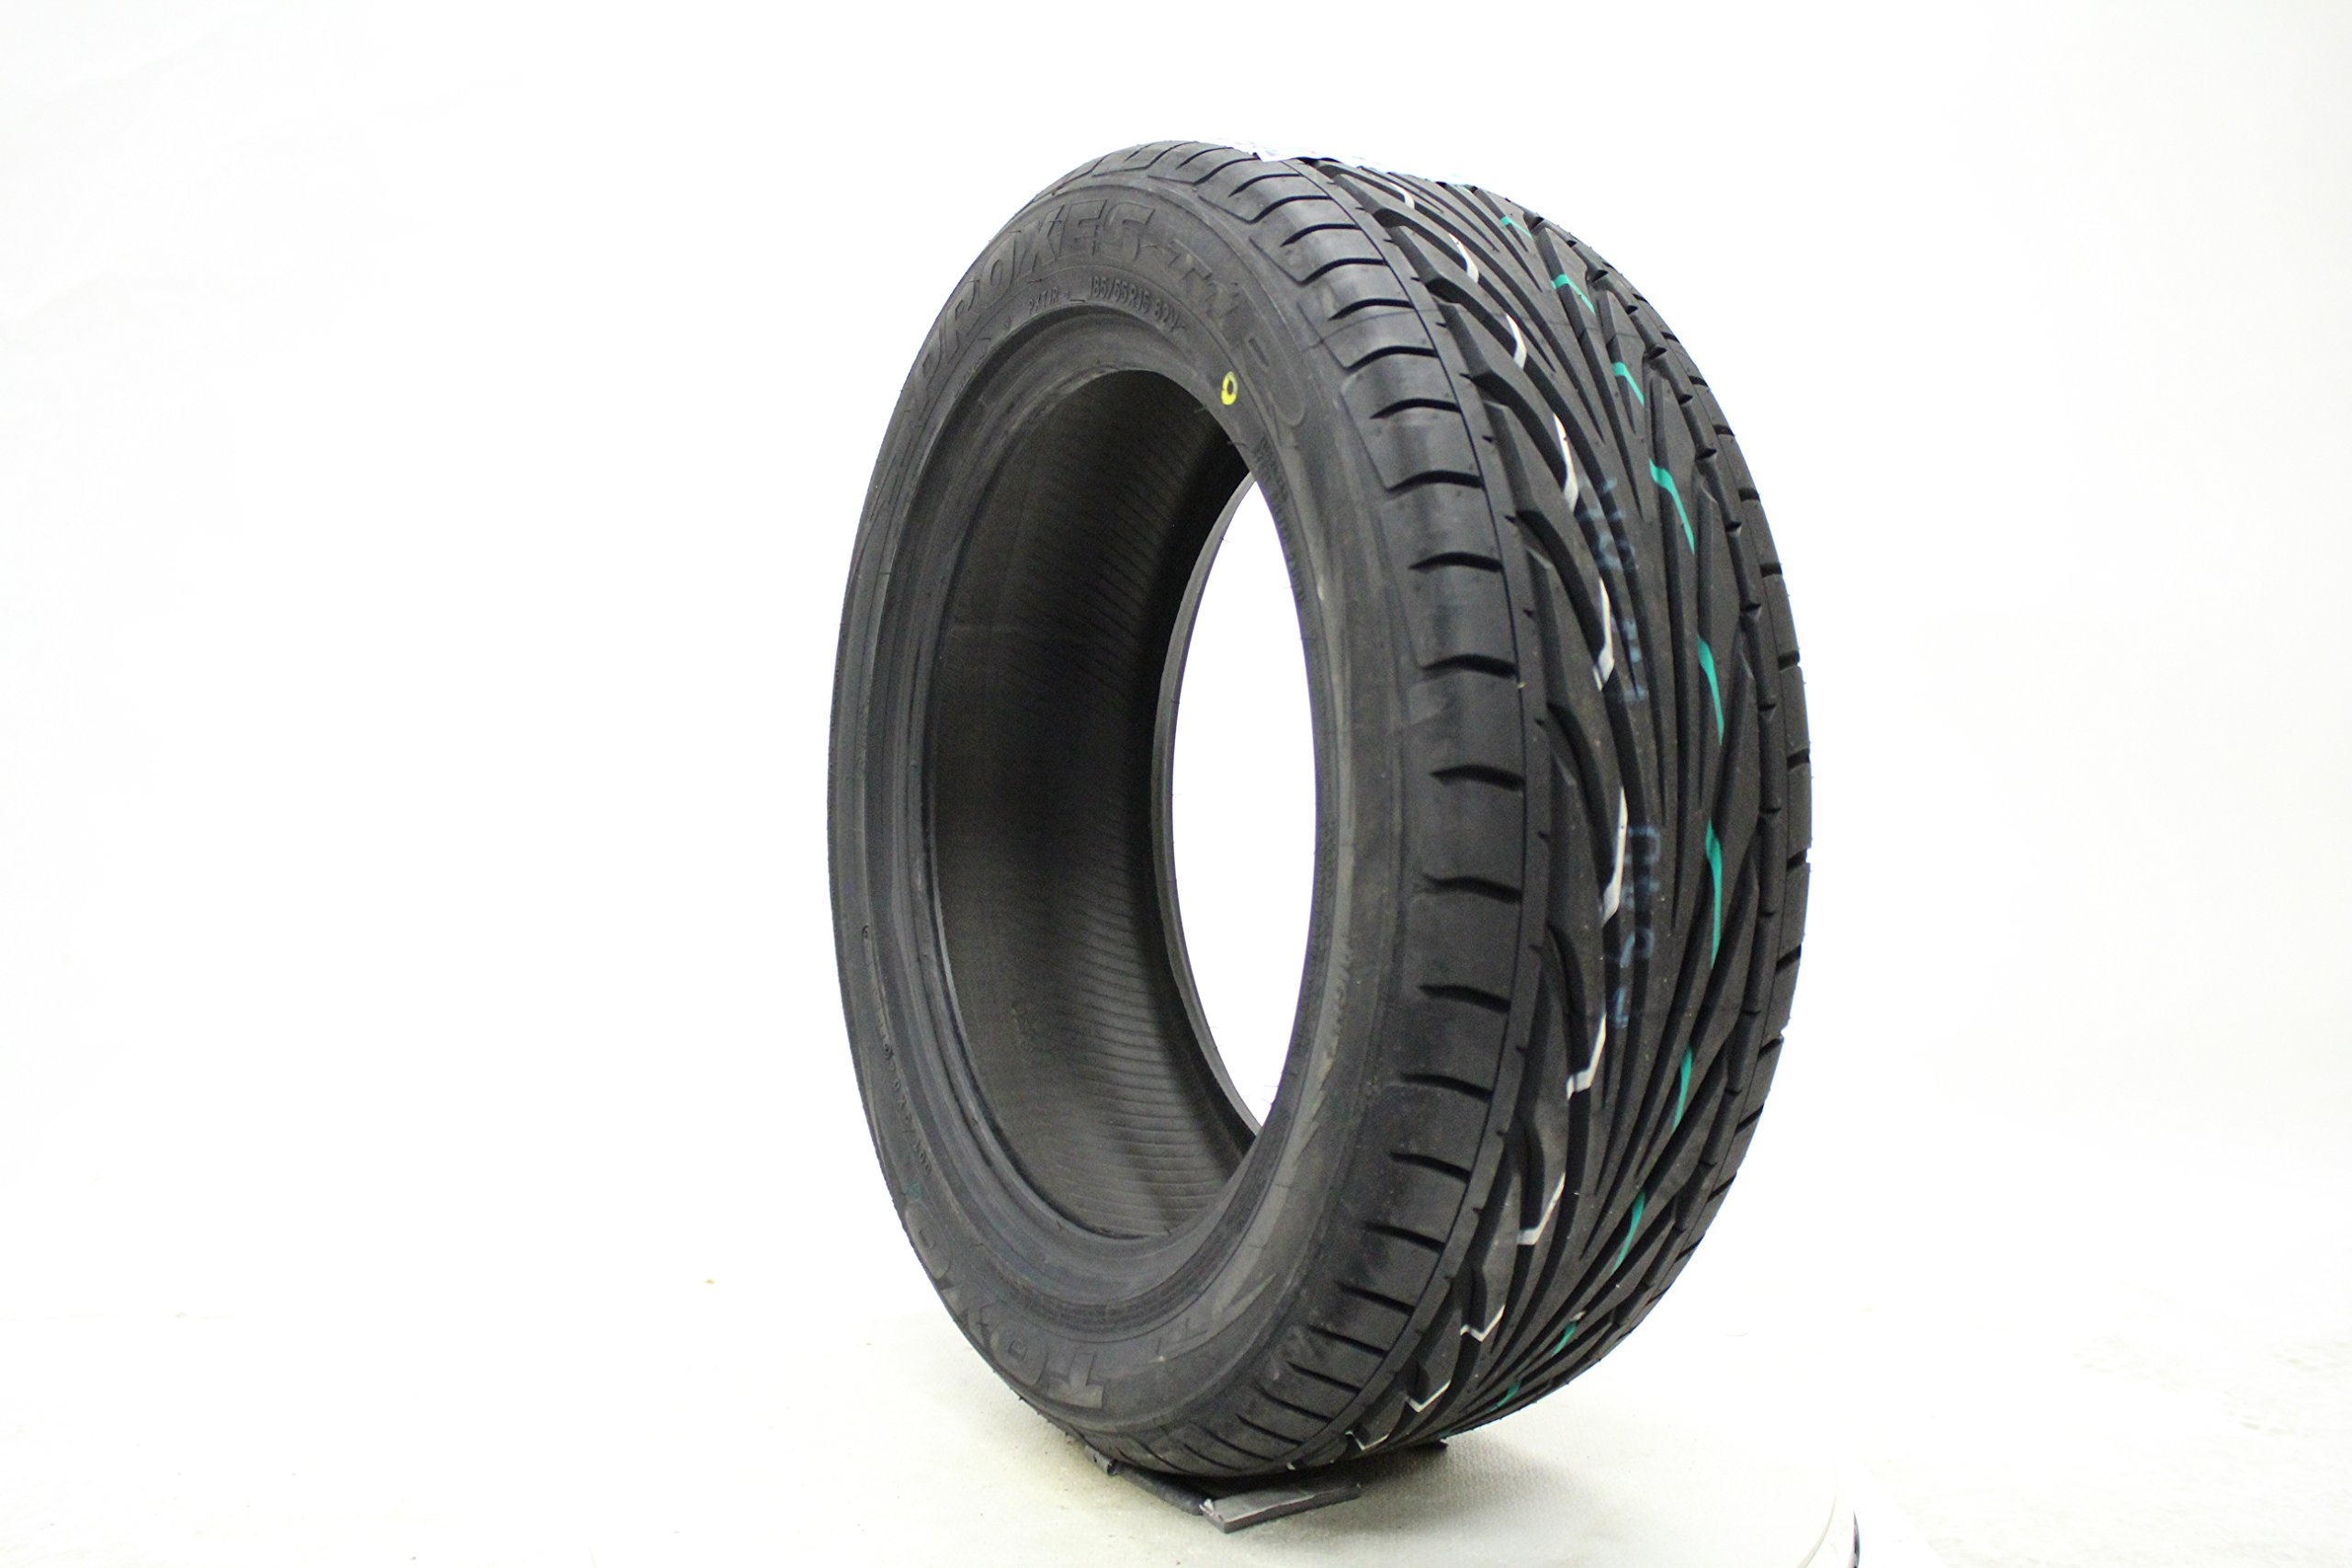 Toyo 250760 PROXES T1R Performance Radial Tire - 195/45R15 78V